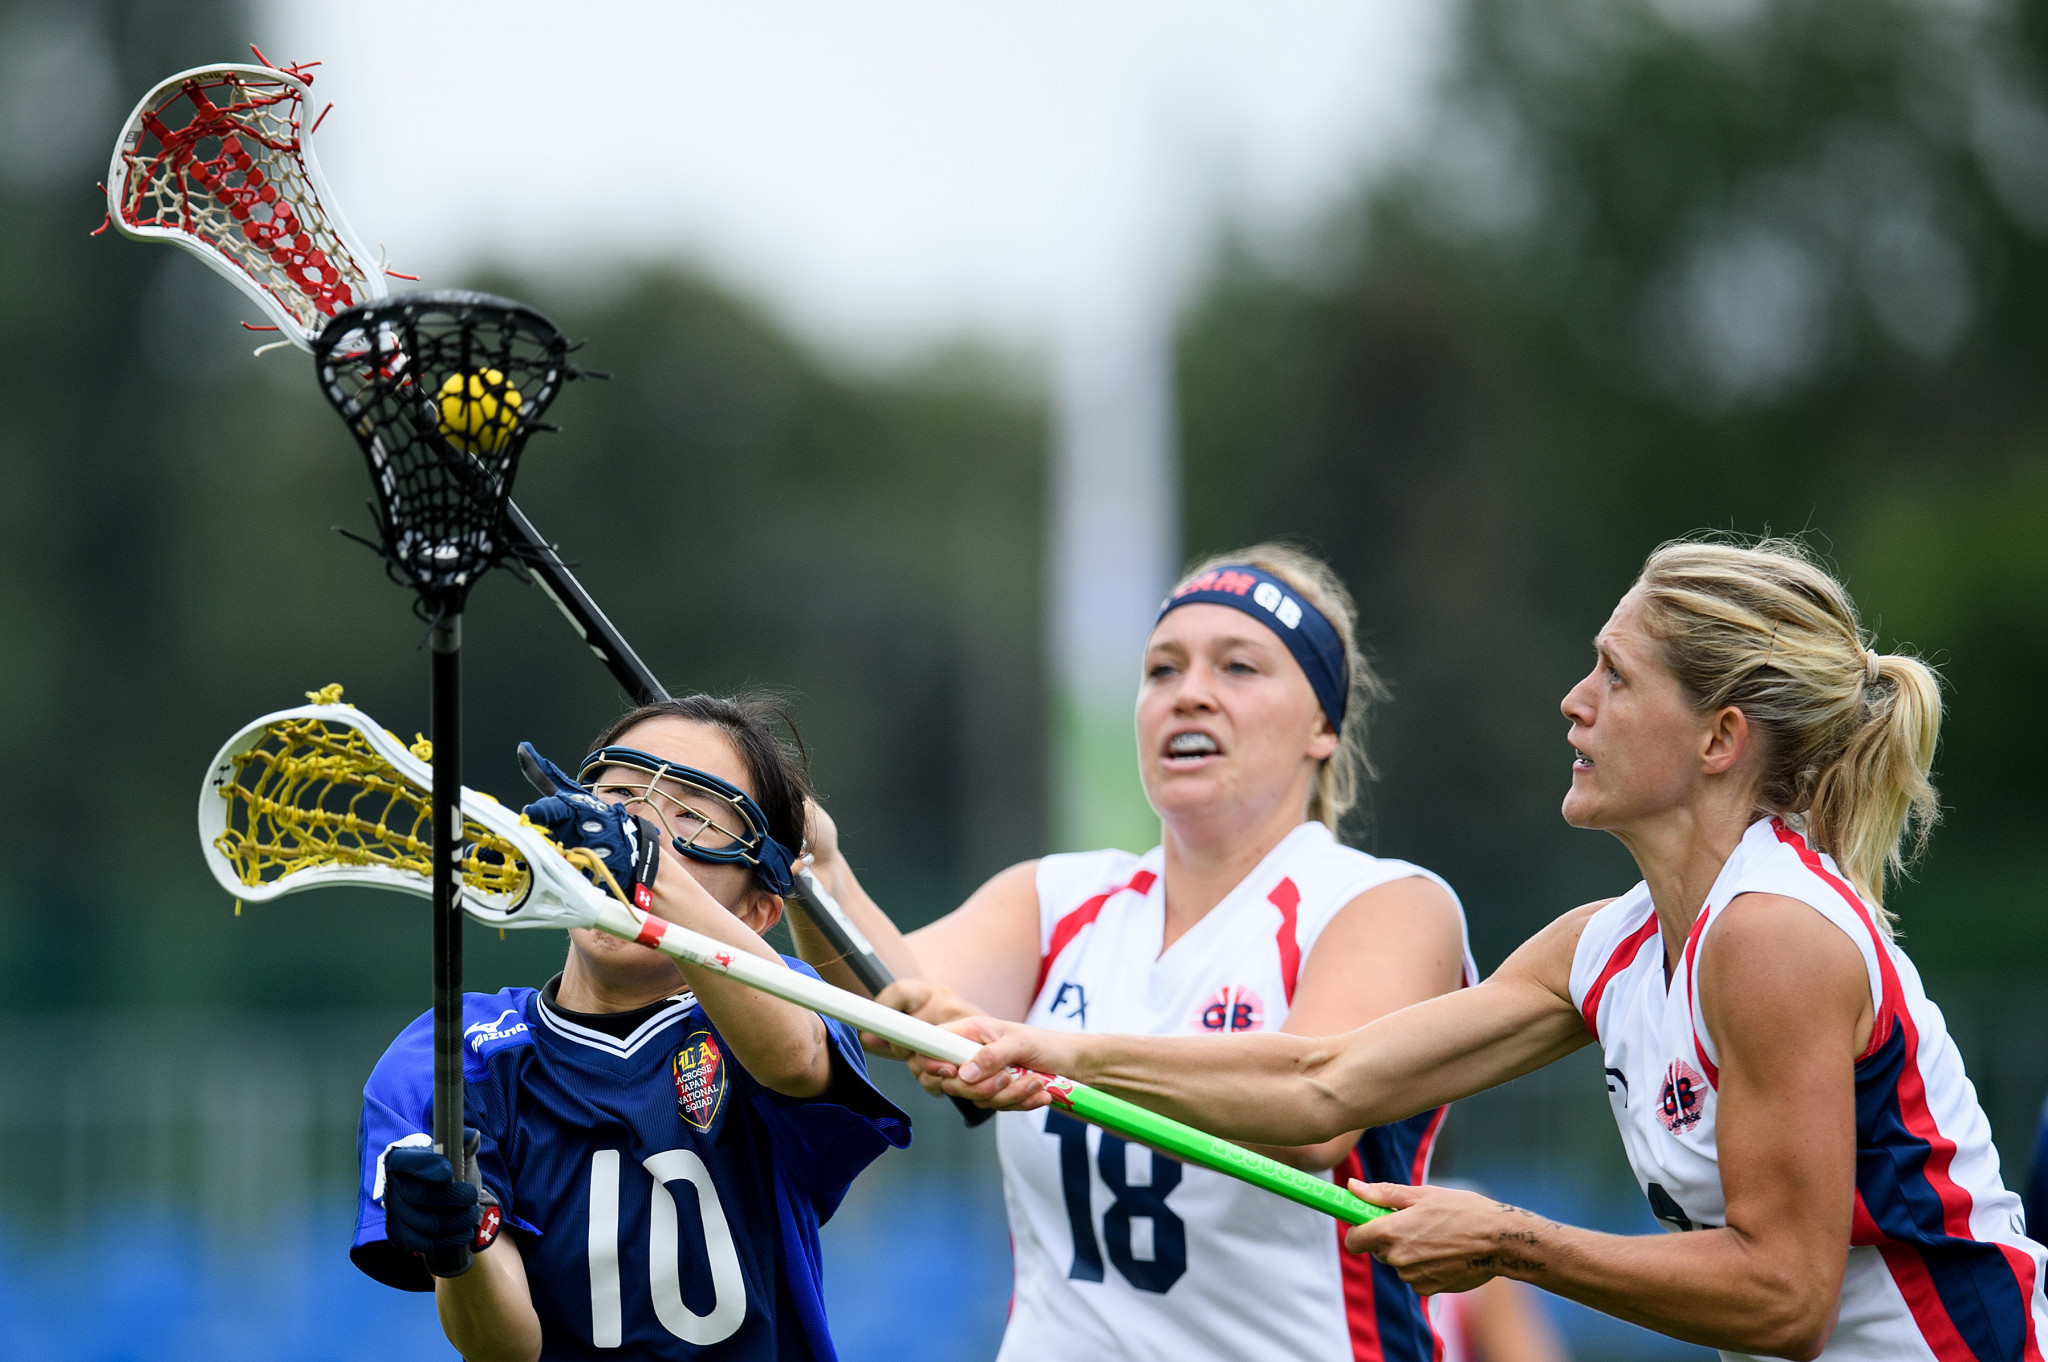 The ultimate aim of lacrosse is Olympic inclusion  ©Getty Images